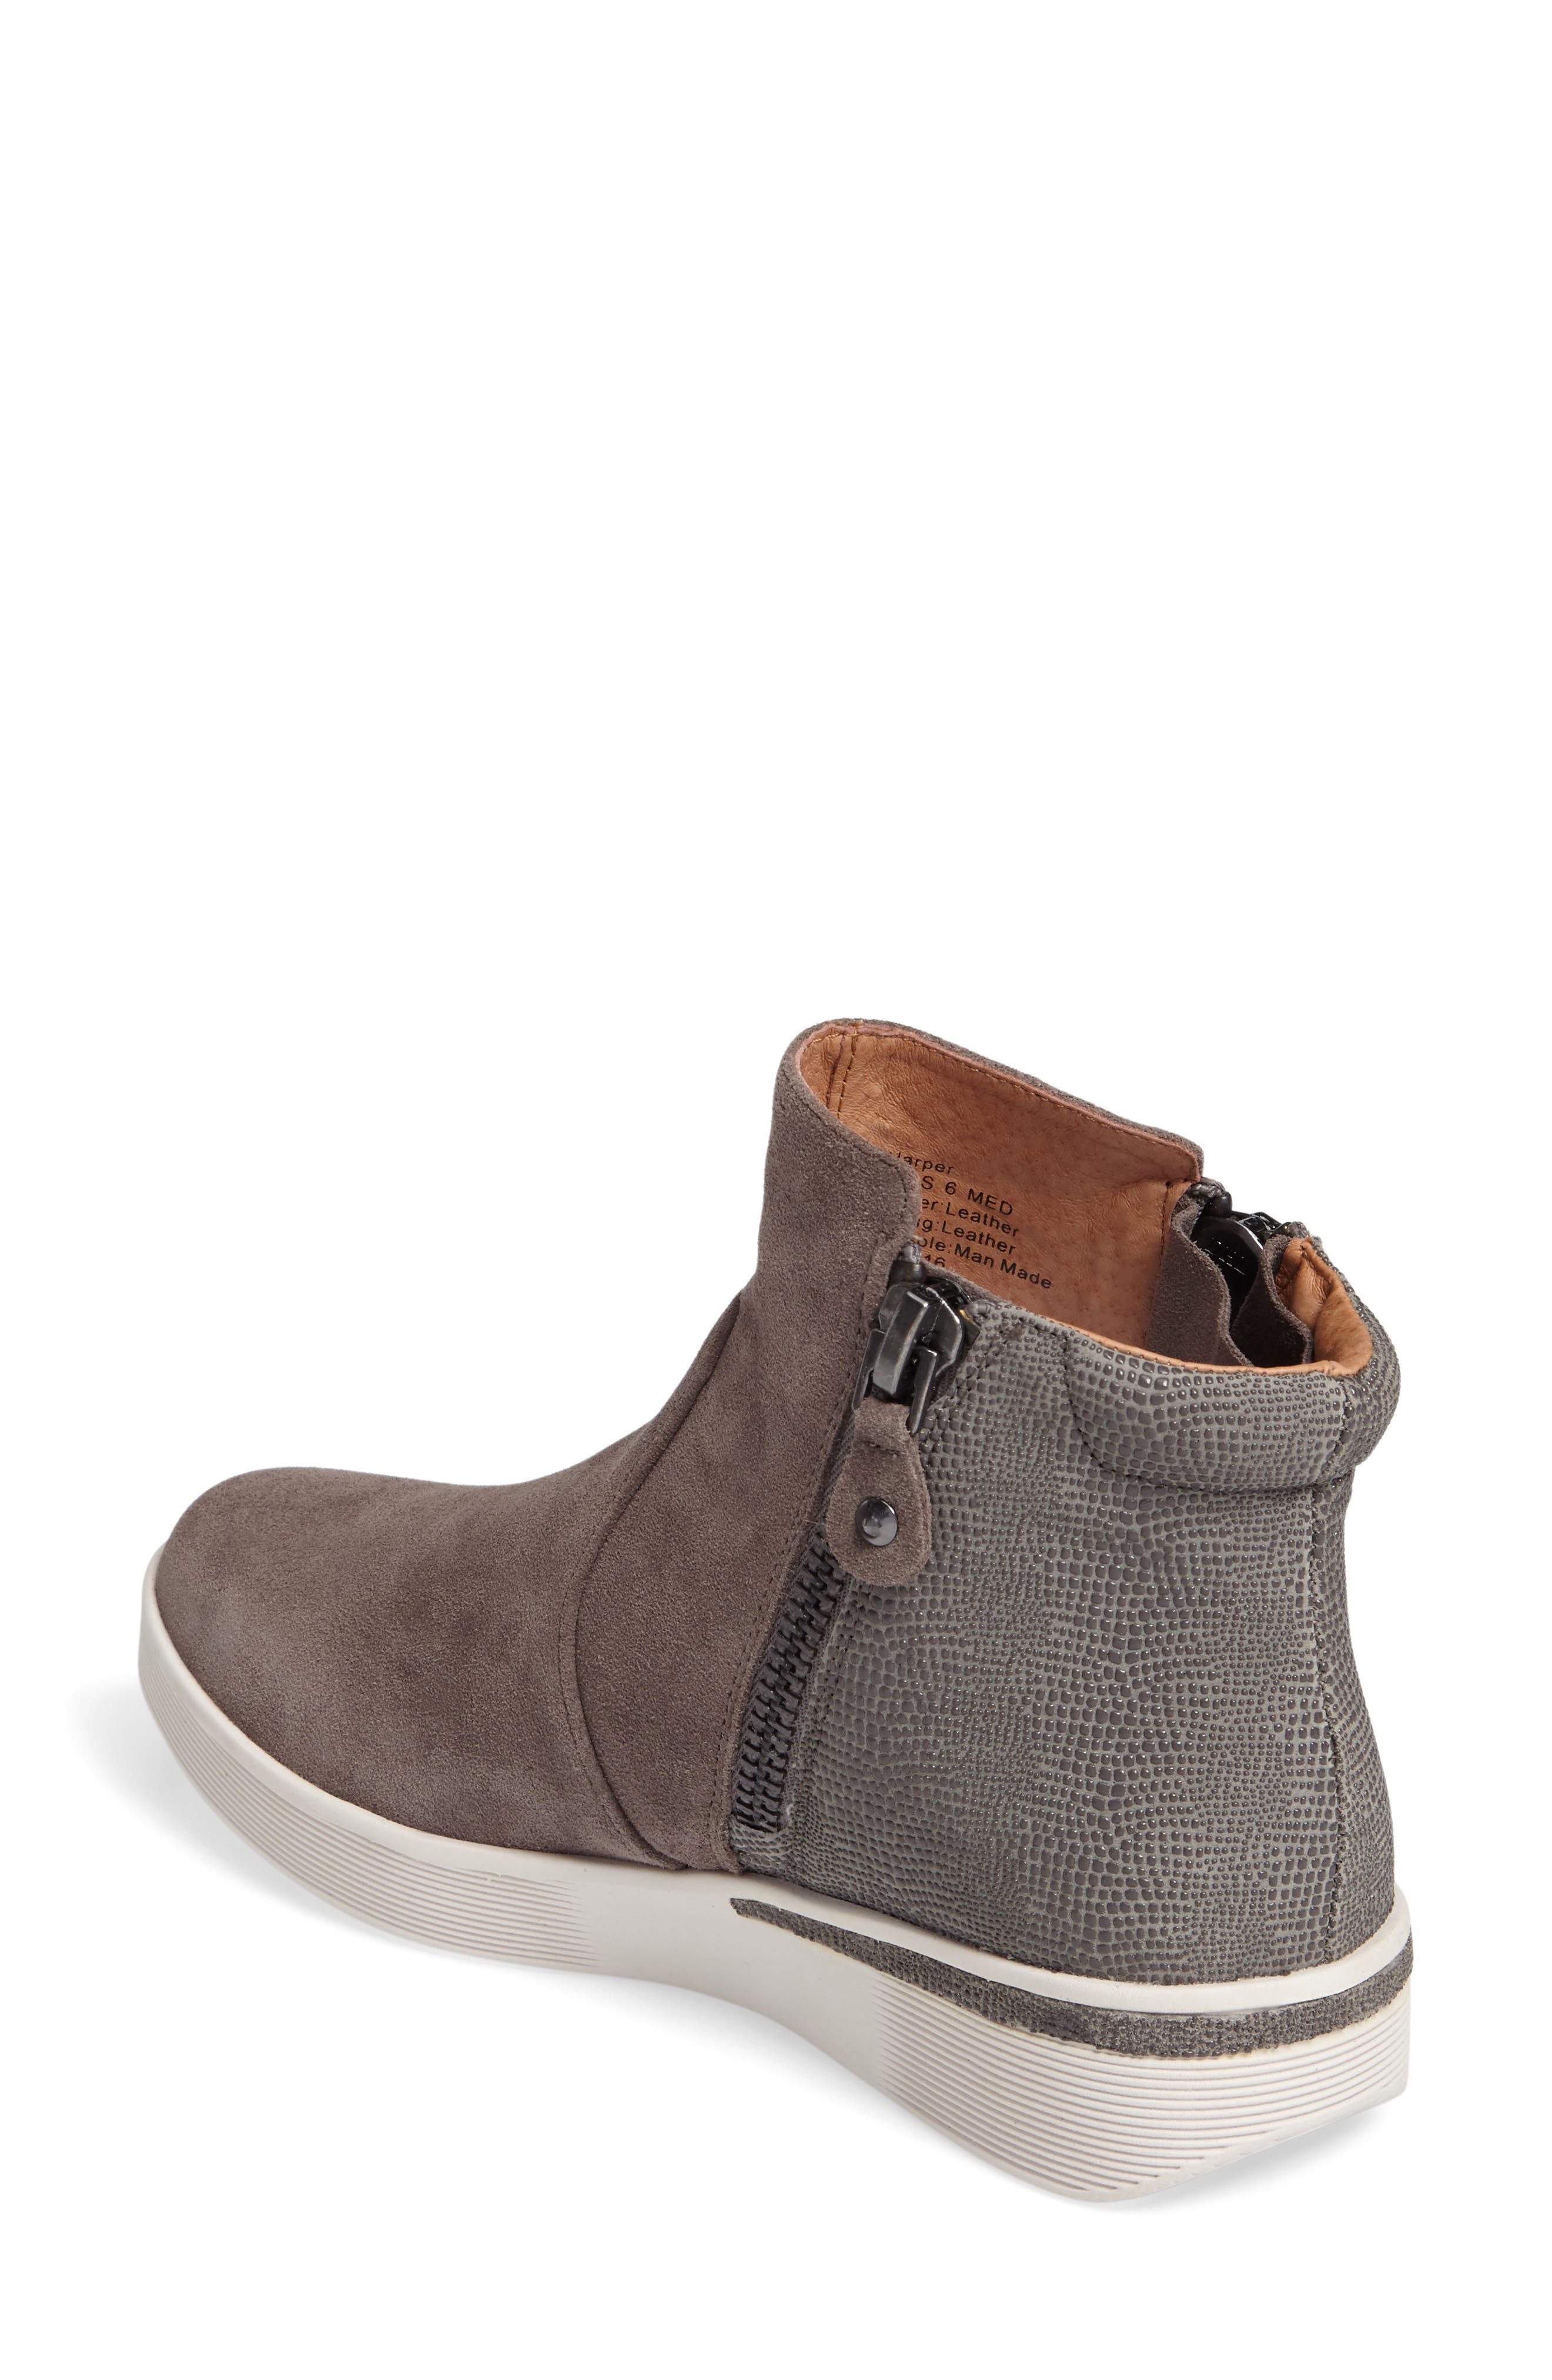 GENTLE SOULS BY KENNETH COLE, 'Harper' Sneaker Bootie, Alternate thumbnail 2, color, GREY LEATHER